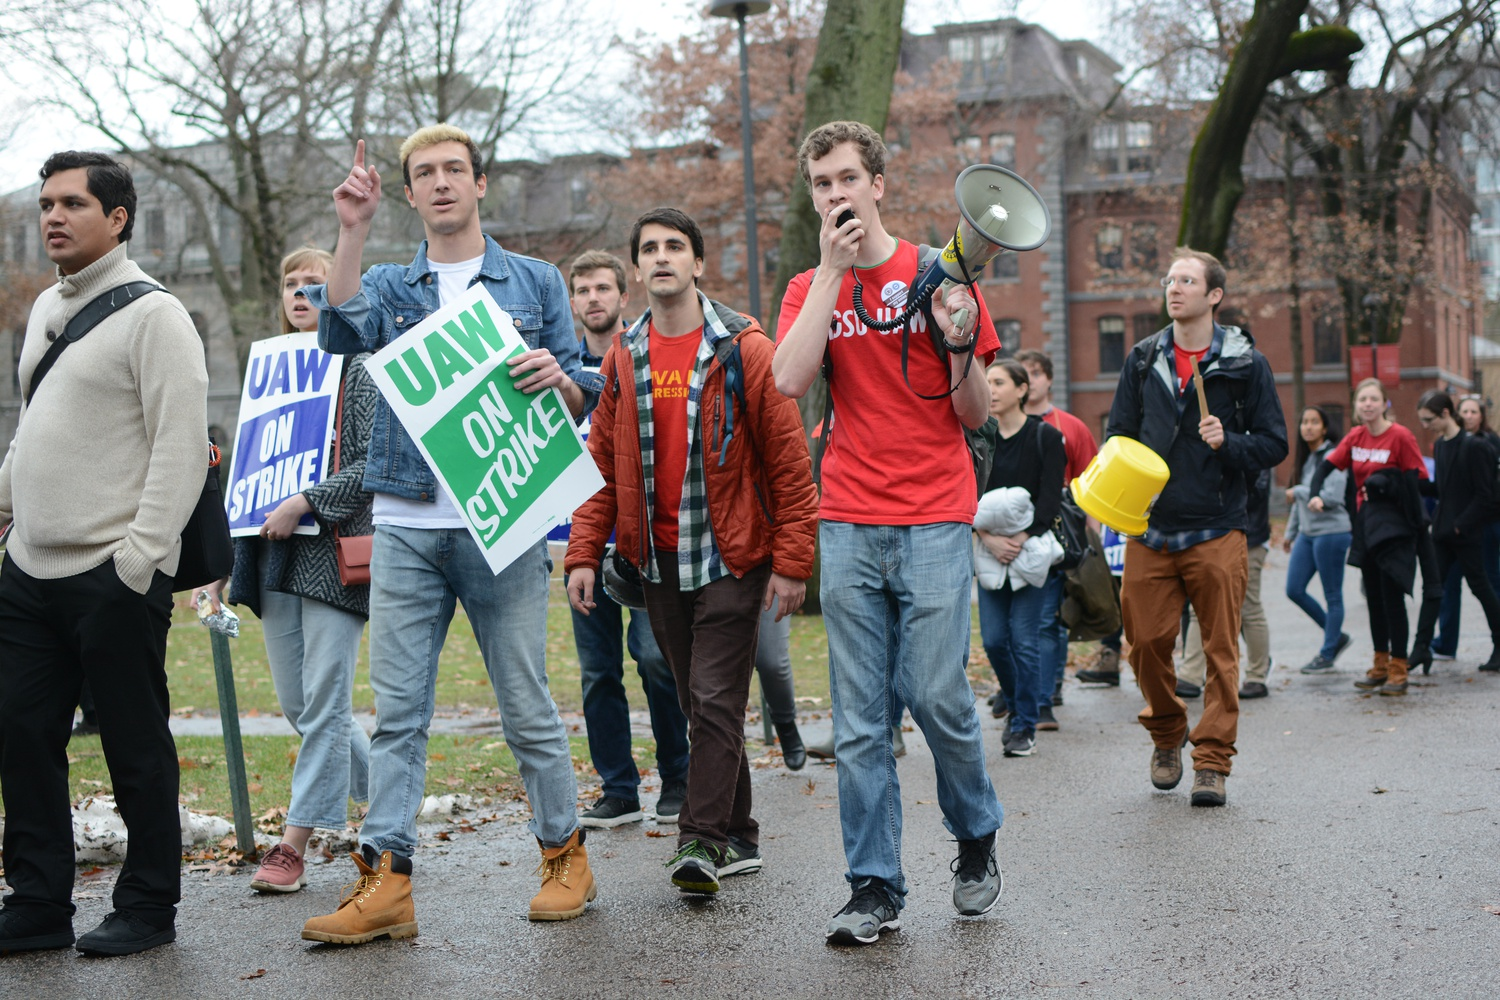 Union members and supporters picket outside Mass. Hall Tuesday afternoon on the sixth day of the HGSU-UAW strike.